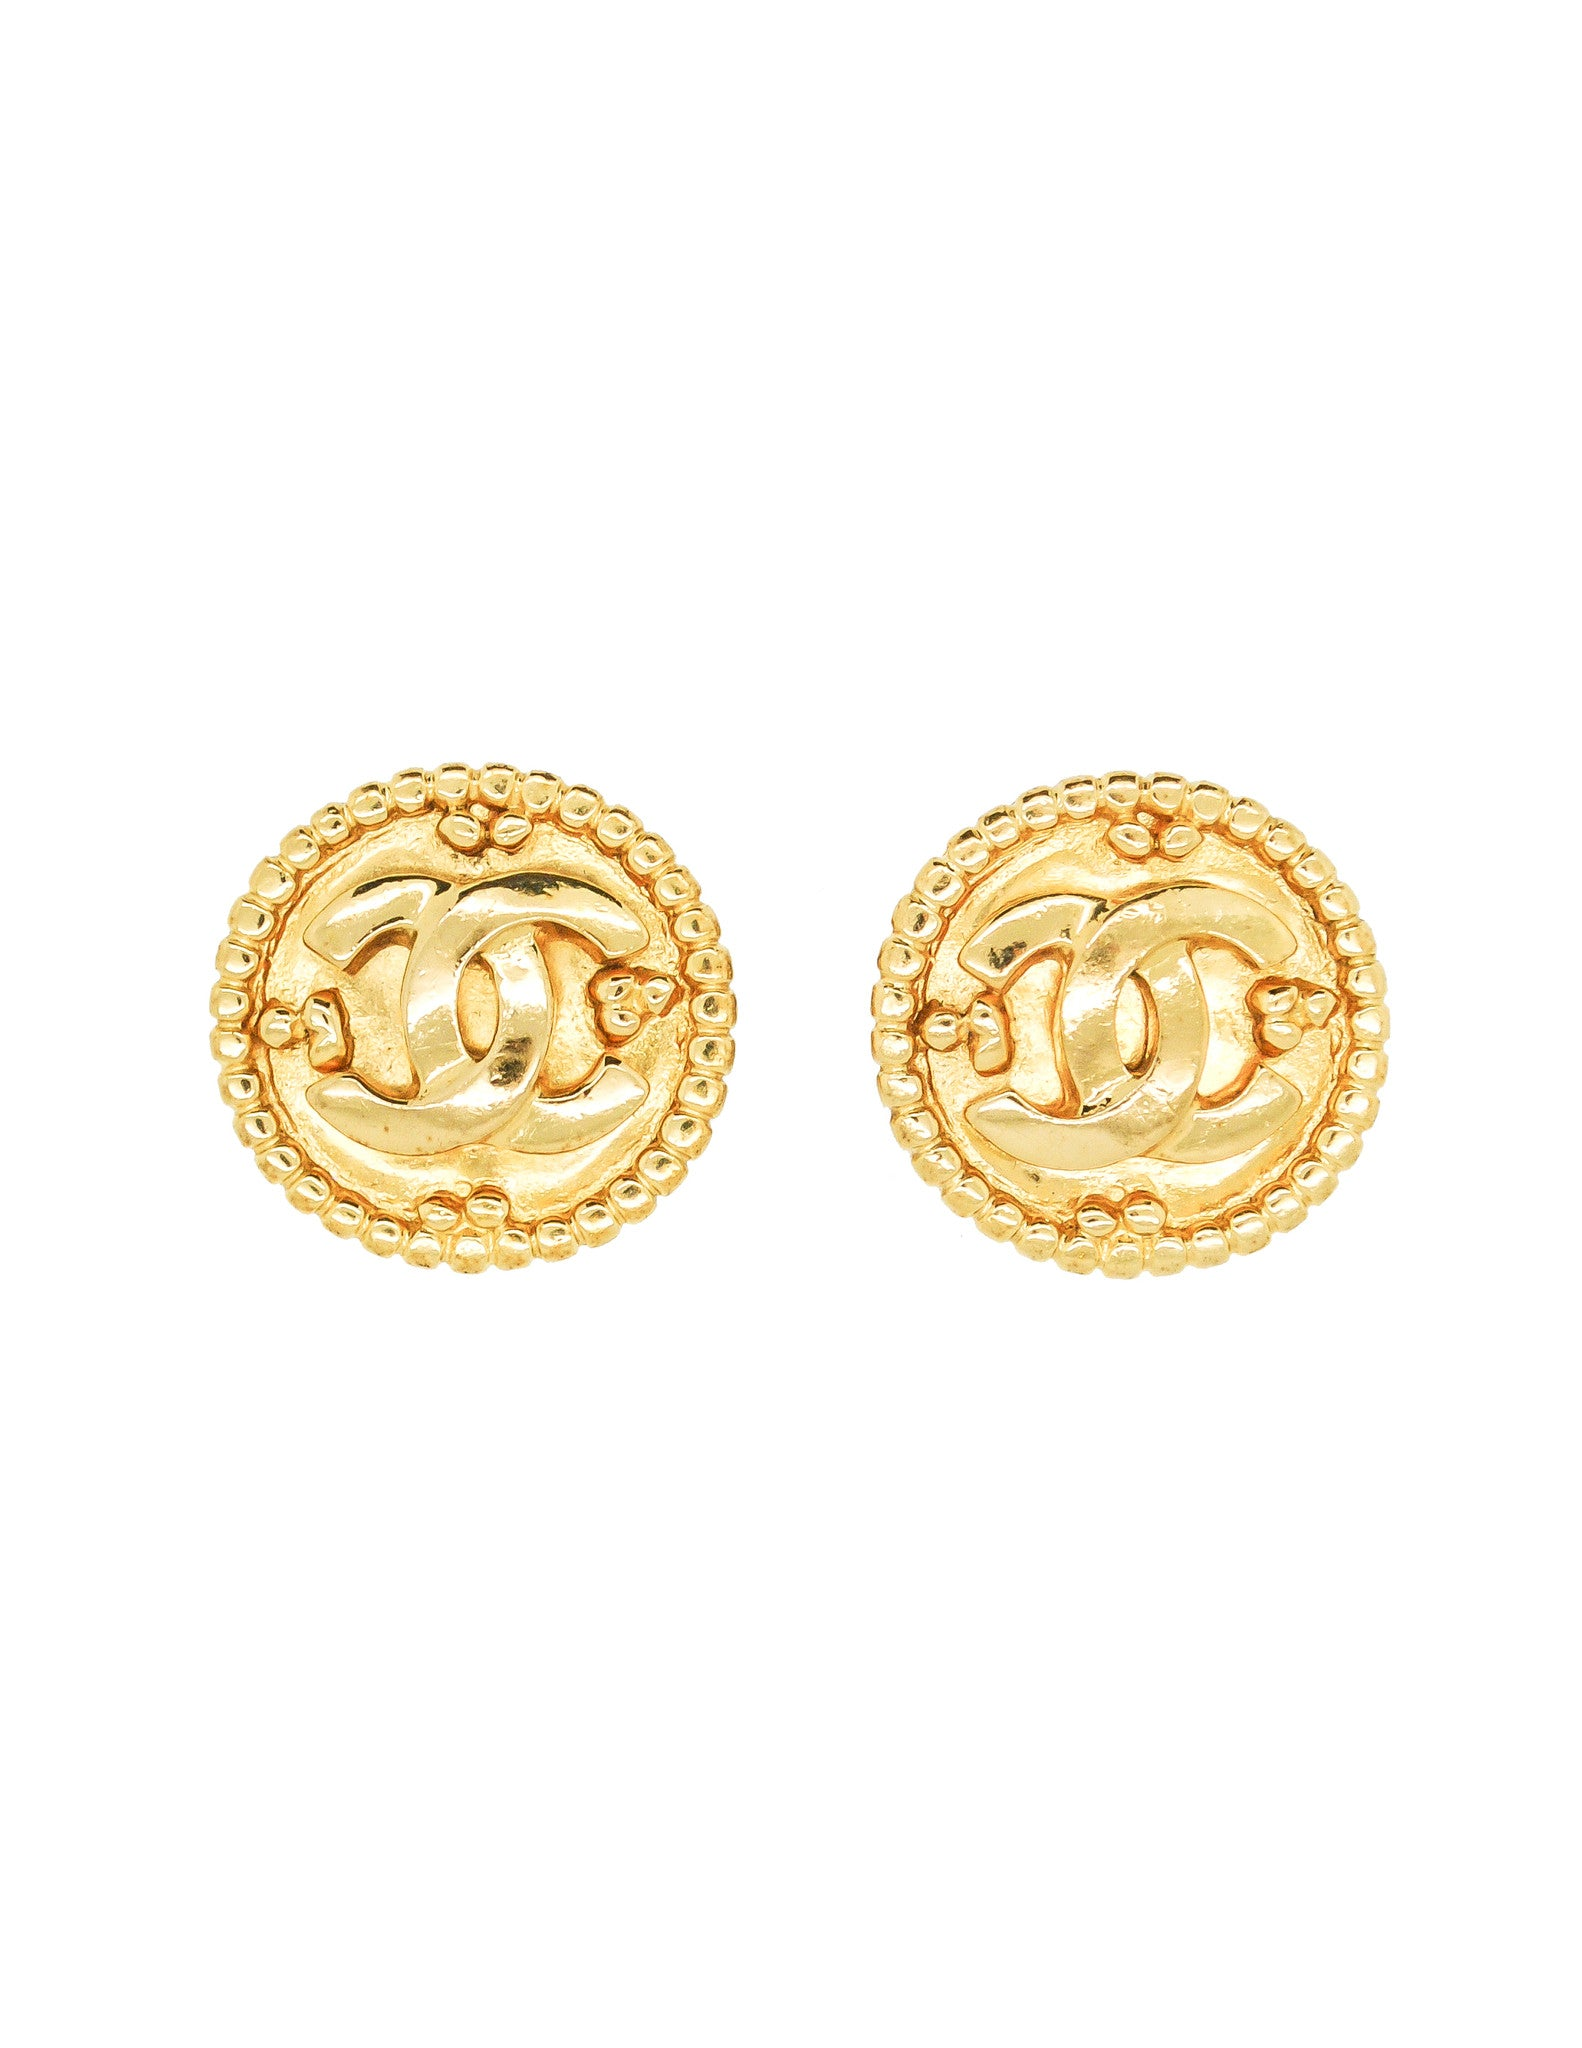 products chanel consigned gold earrings vintage on pearl clip designs